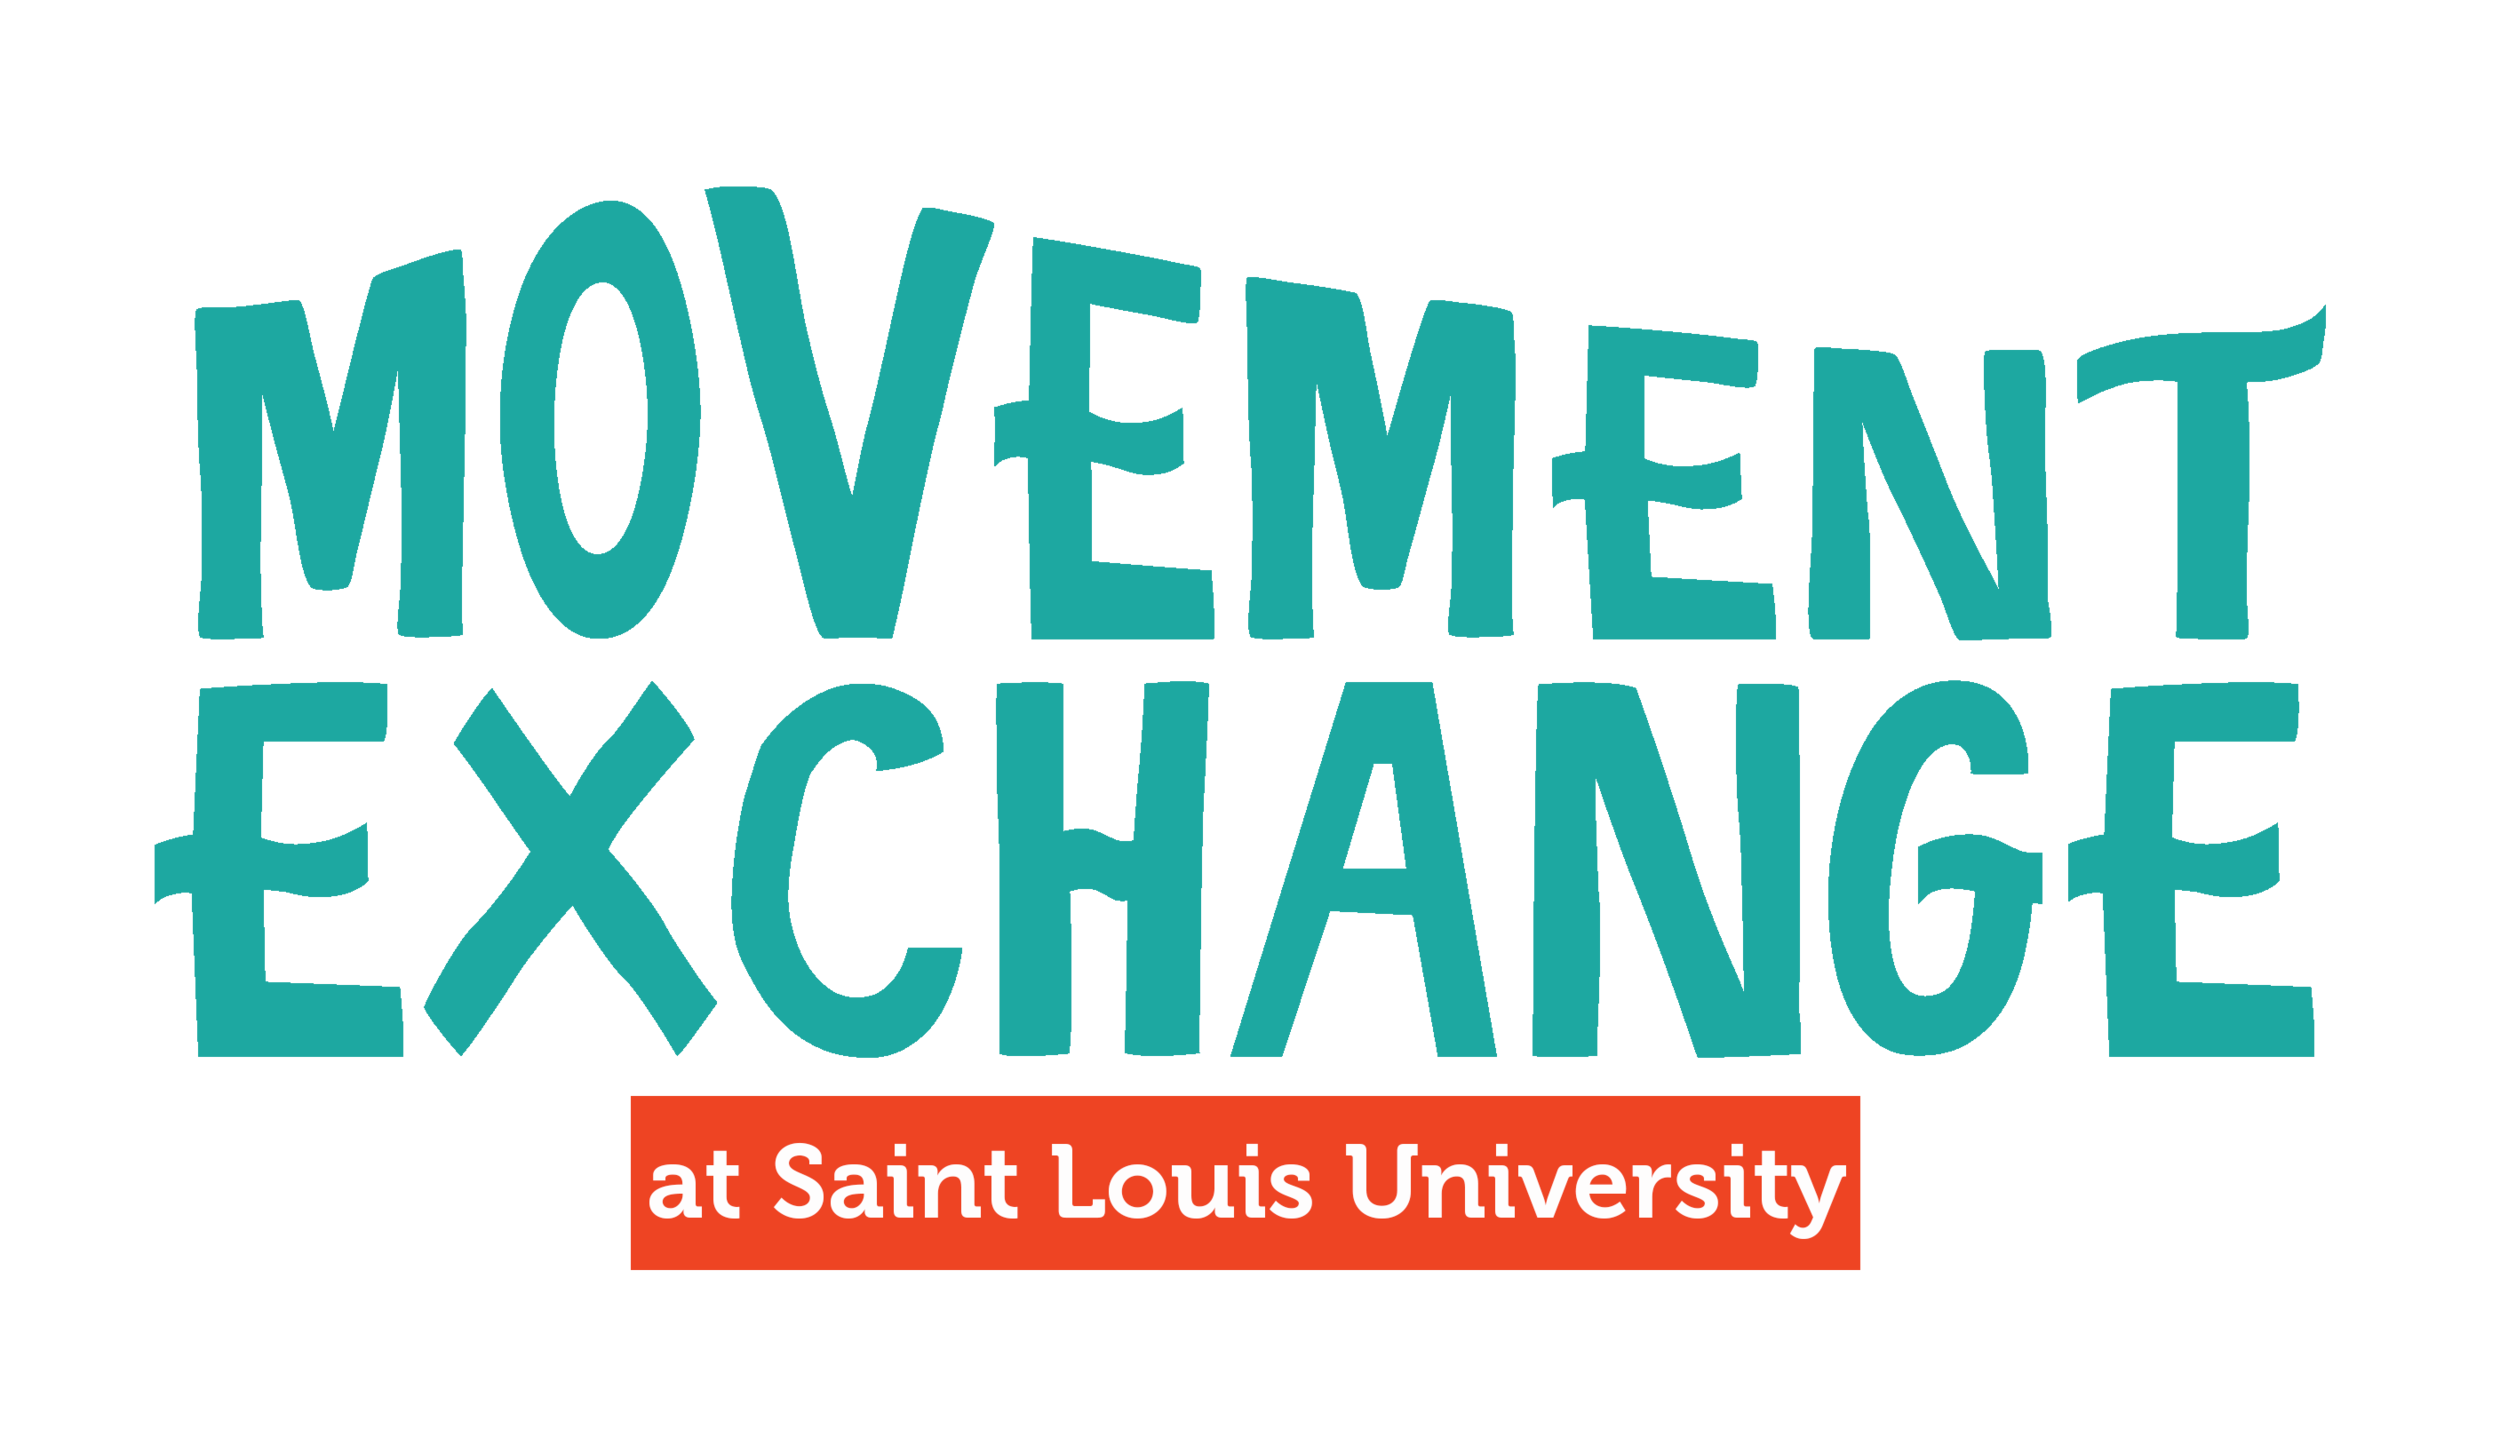 movementexchange-SLU-chapter-full-logo.png